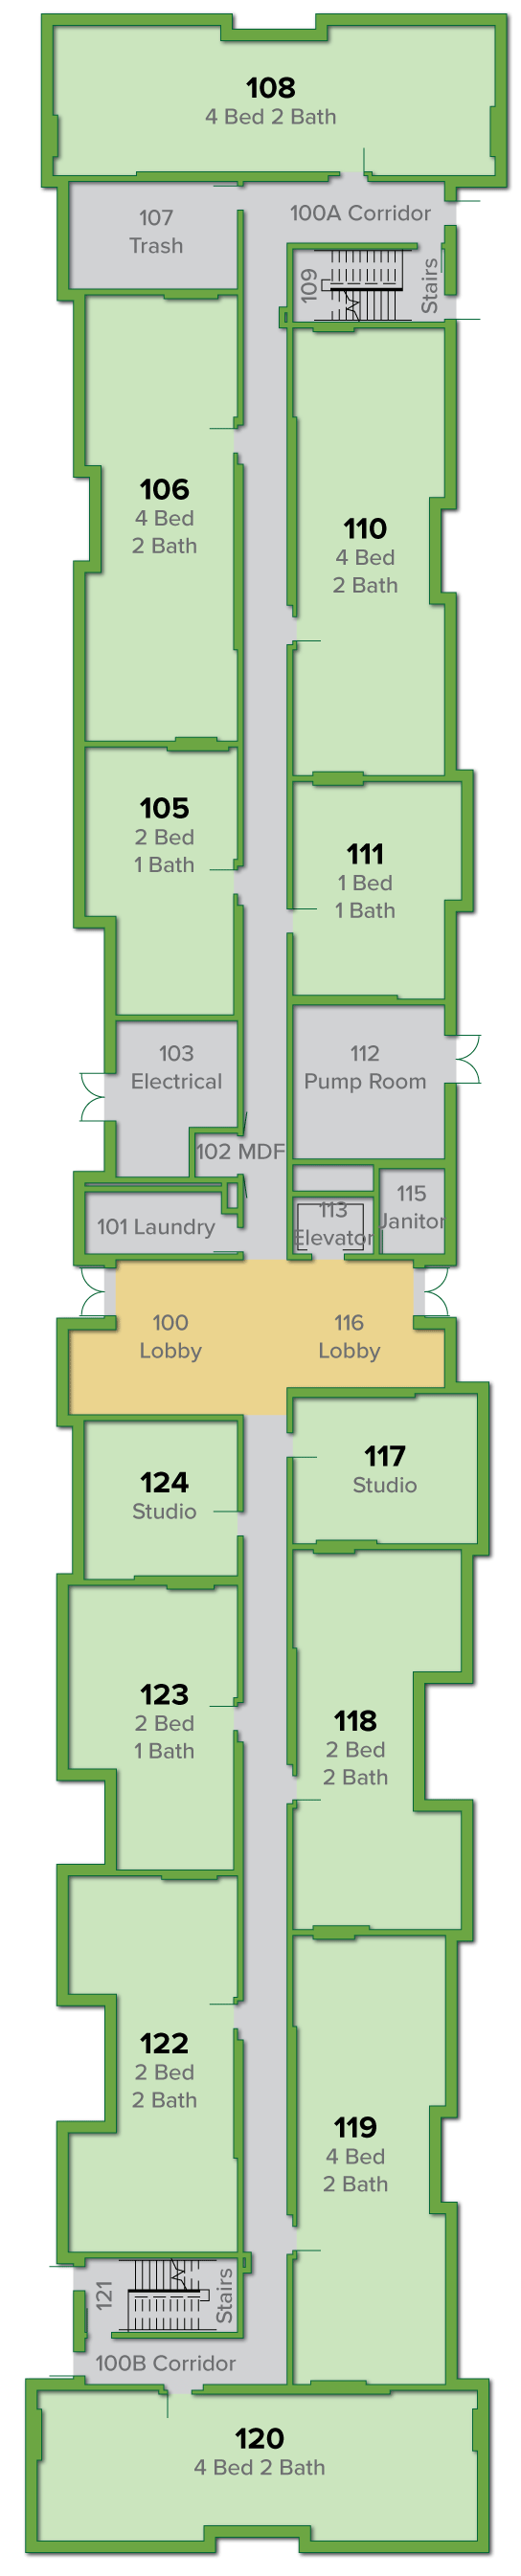 I1 Building, First Floor